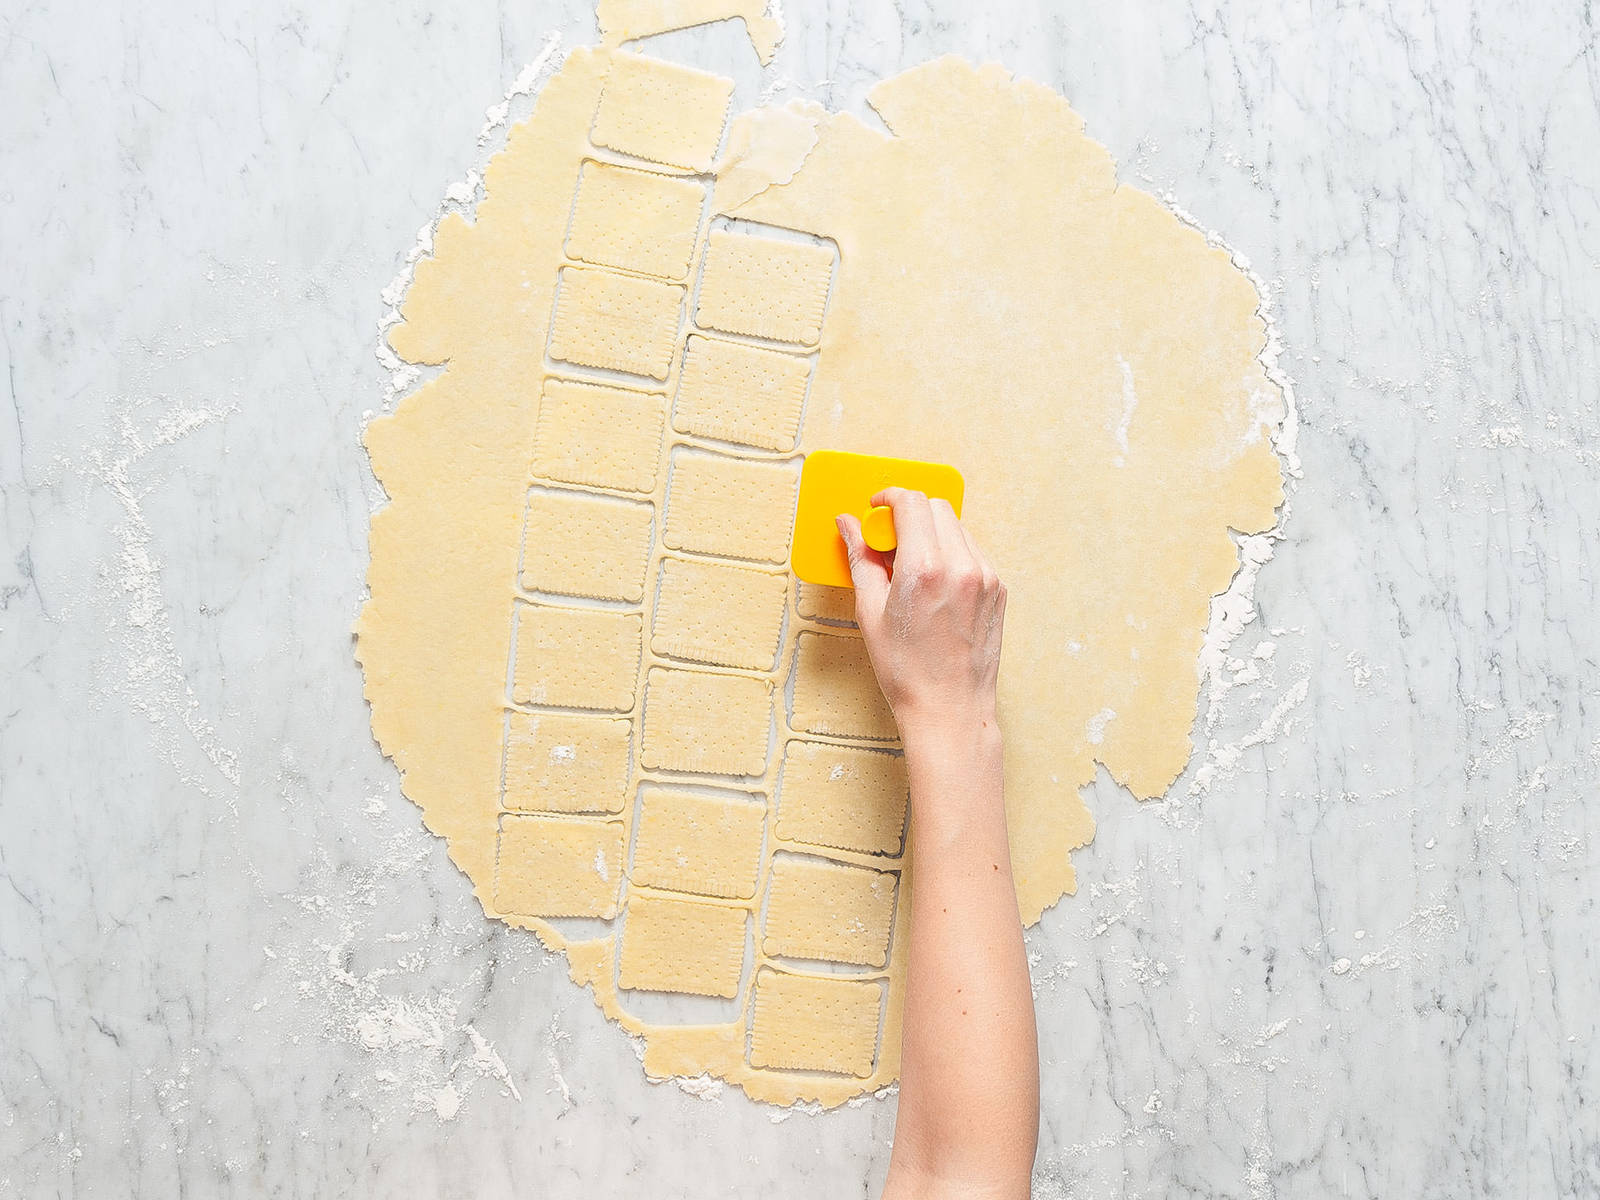 Preheat oven to 180°C/350°F. Flour working surface and roll out dough until approx. 2-mm/0.1-in. thick. Use a cookie cutter to cut out cookies, then brush them with milk.